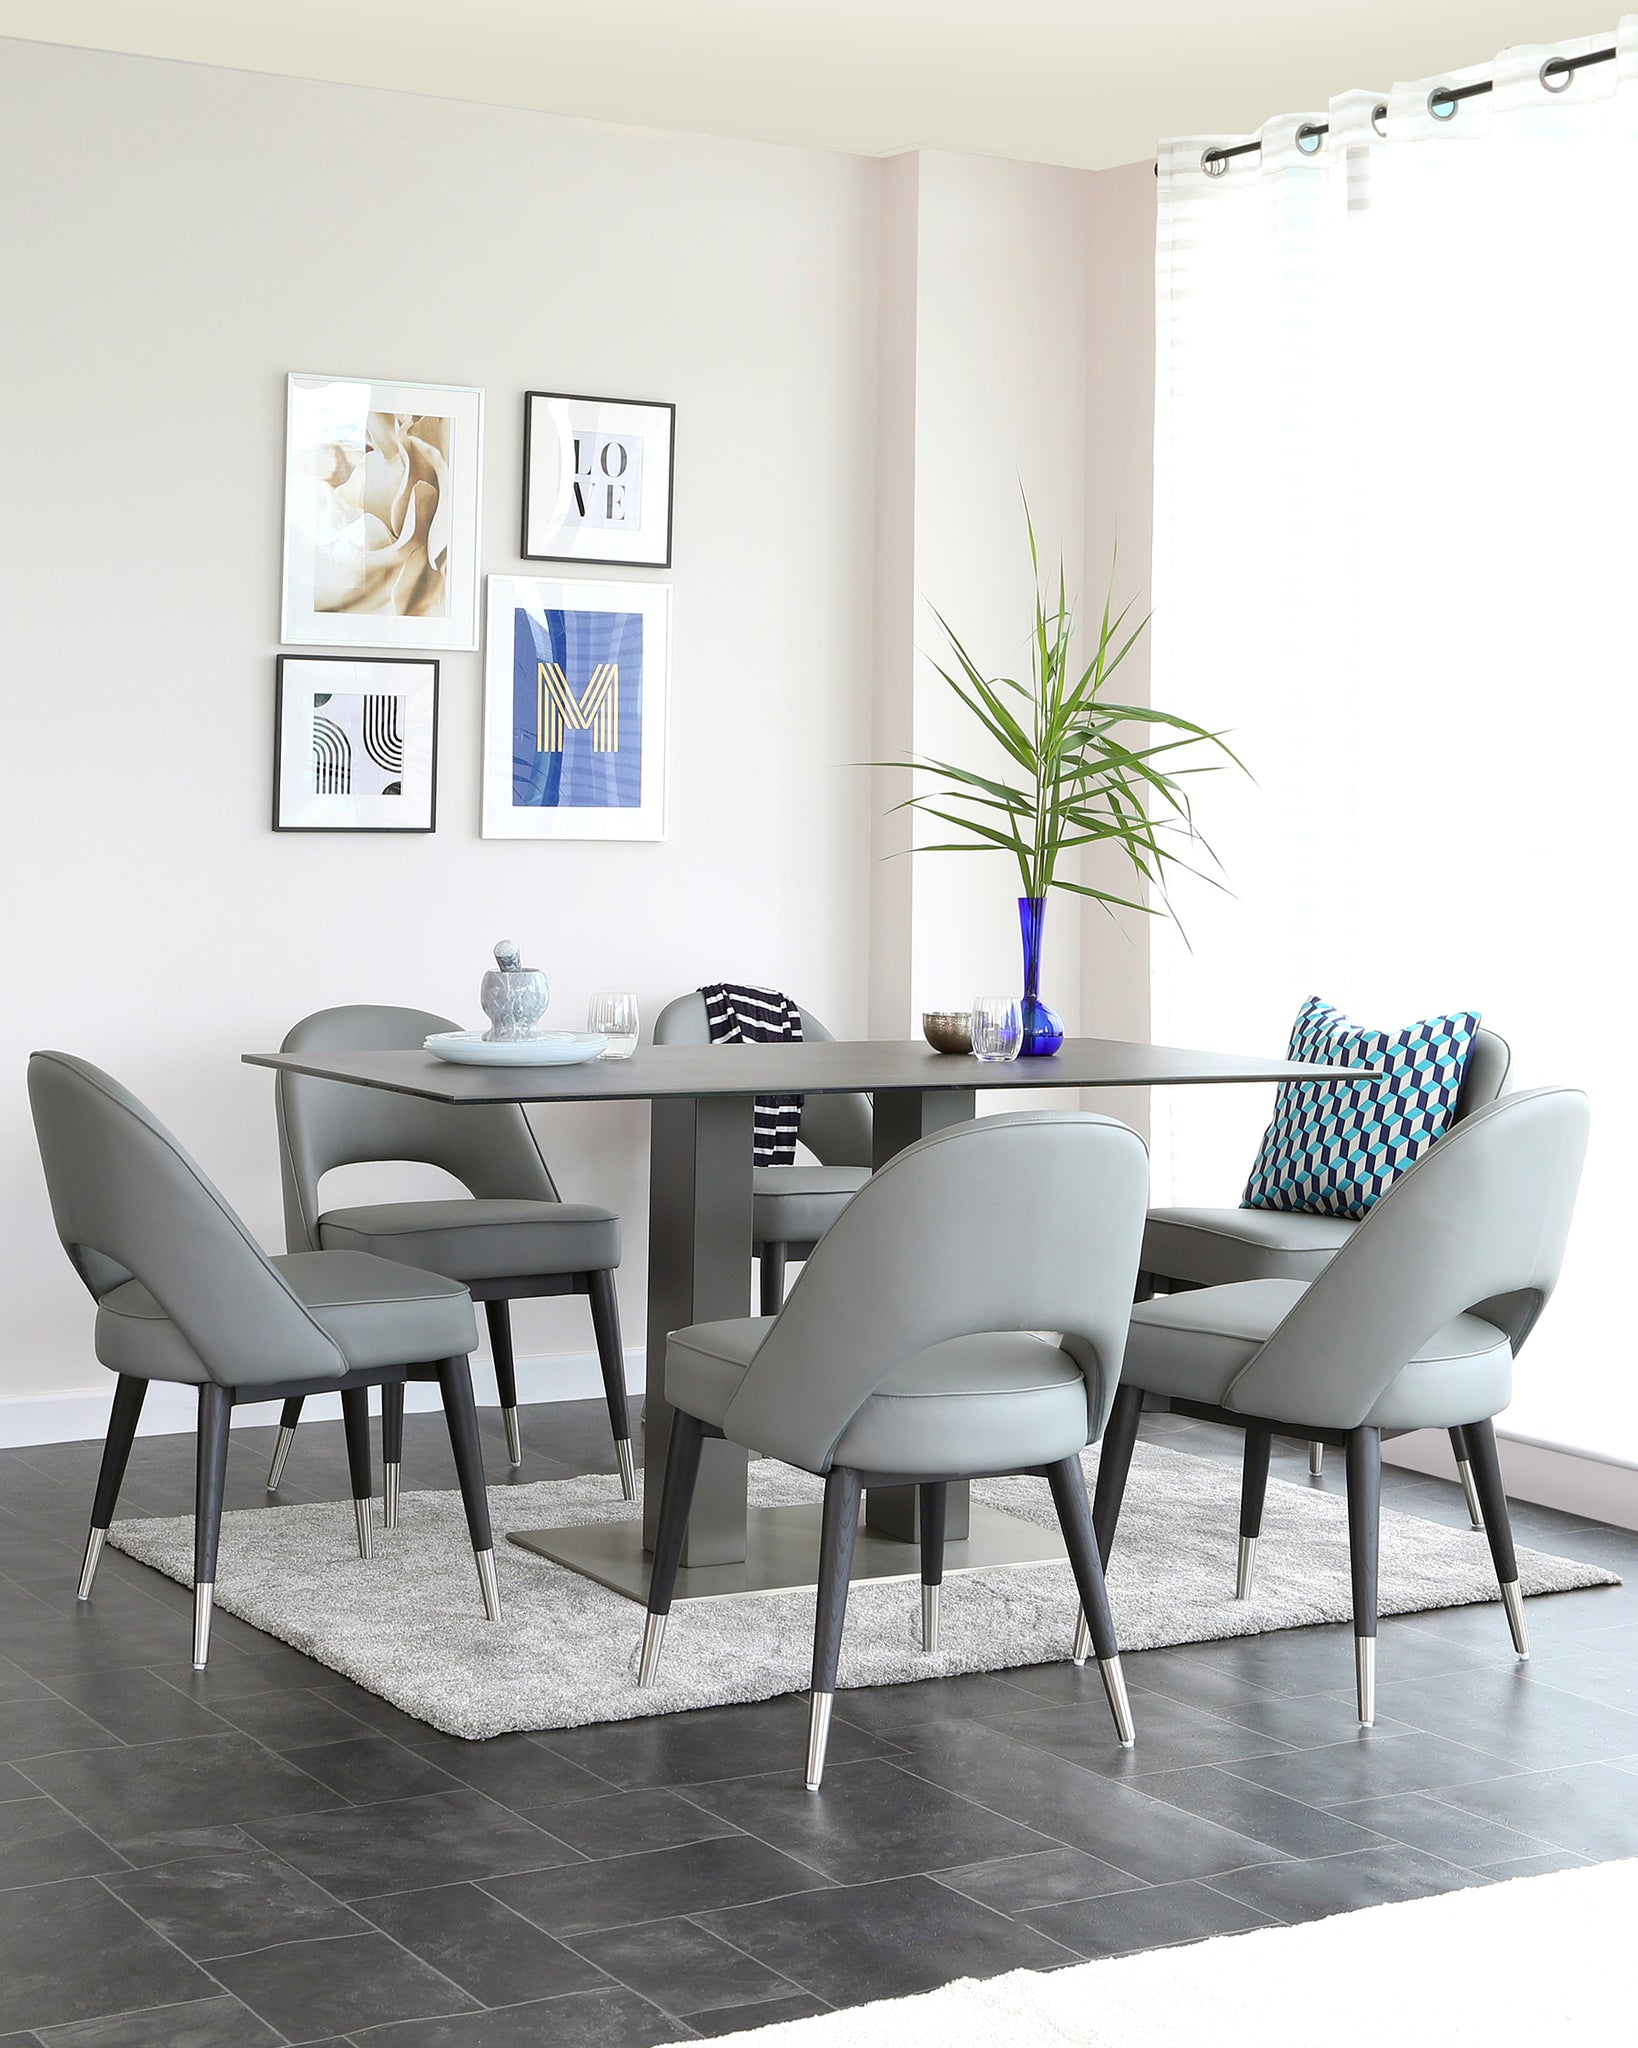 Mia Grey Ceramic Dining Table And Clover 6 Seater Dining Set